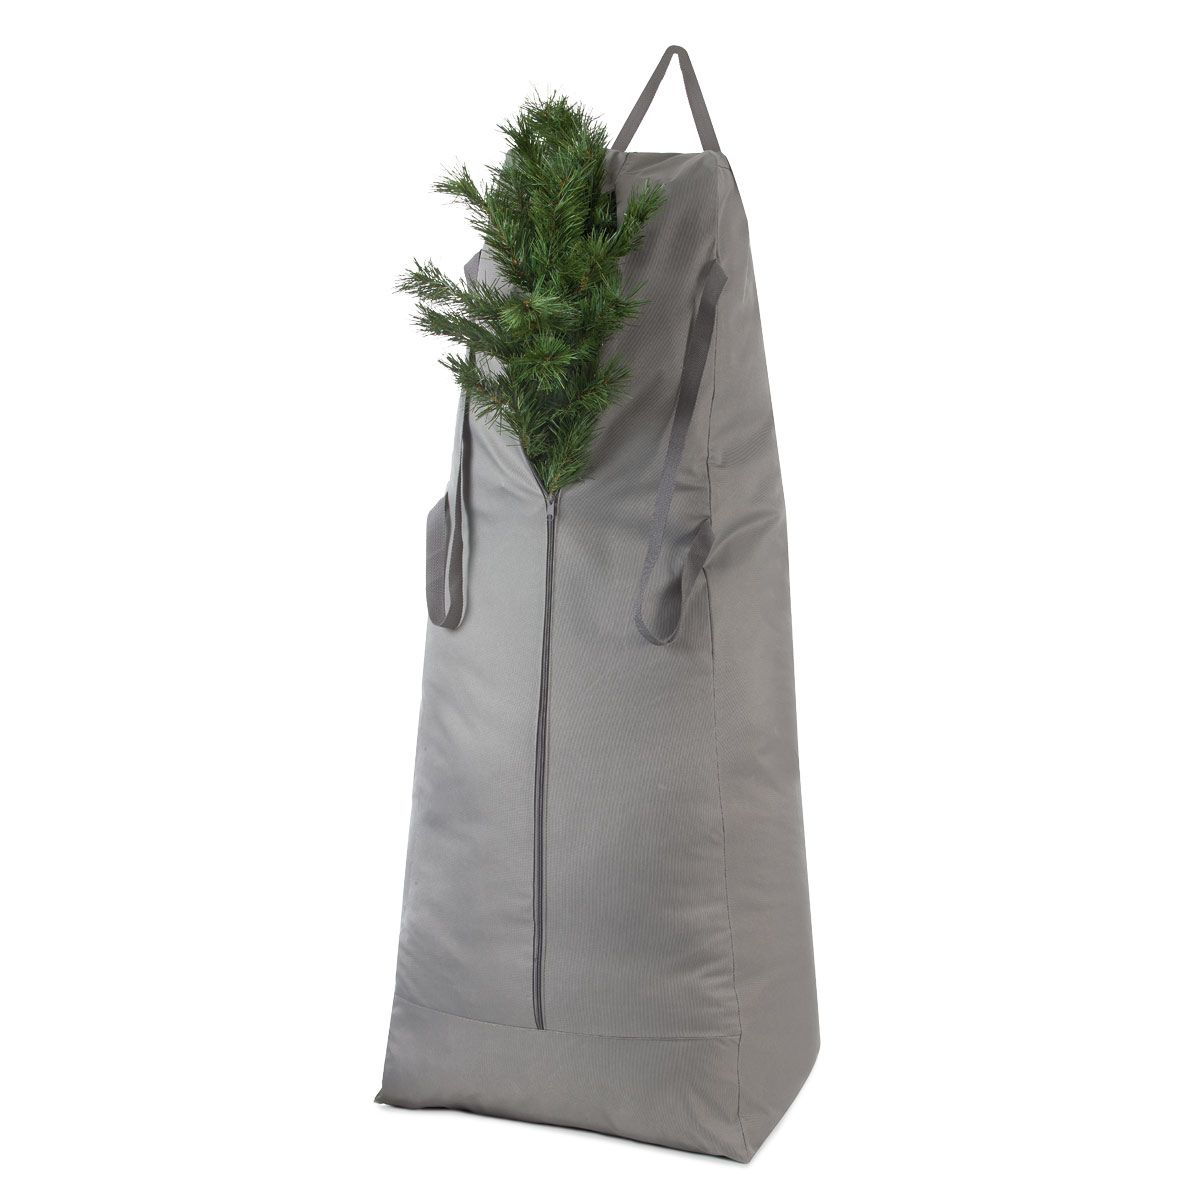 Christmas Tree Bag Kmart